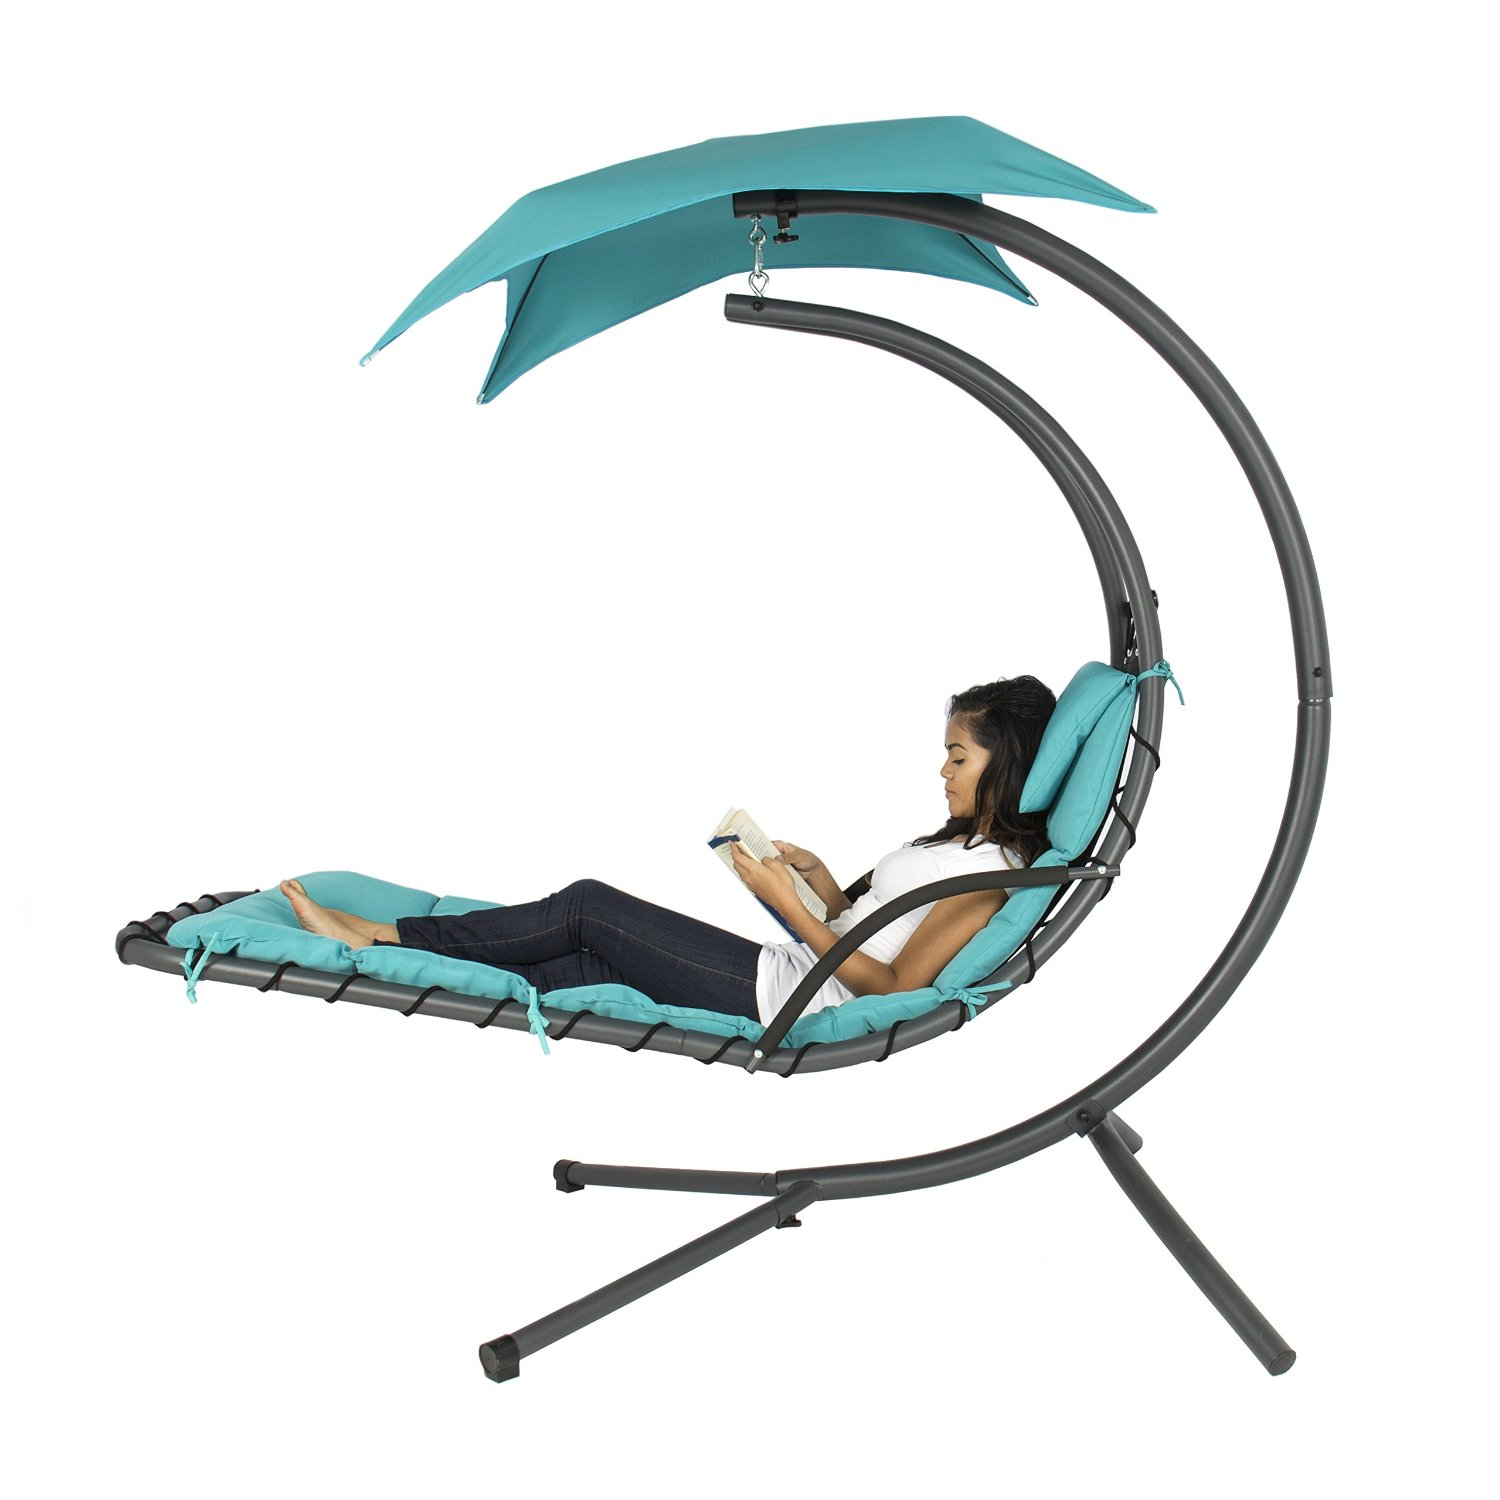 Free Standing Hammock: Forget About Insomnia And Rejuvenate - Free Standing Hammock: Forget About Insomnia And Rejuvenate